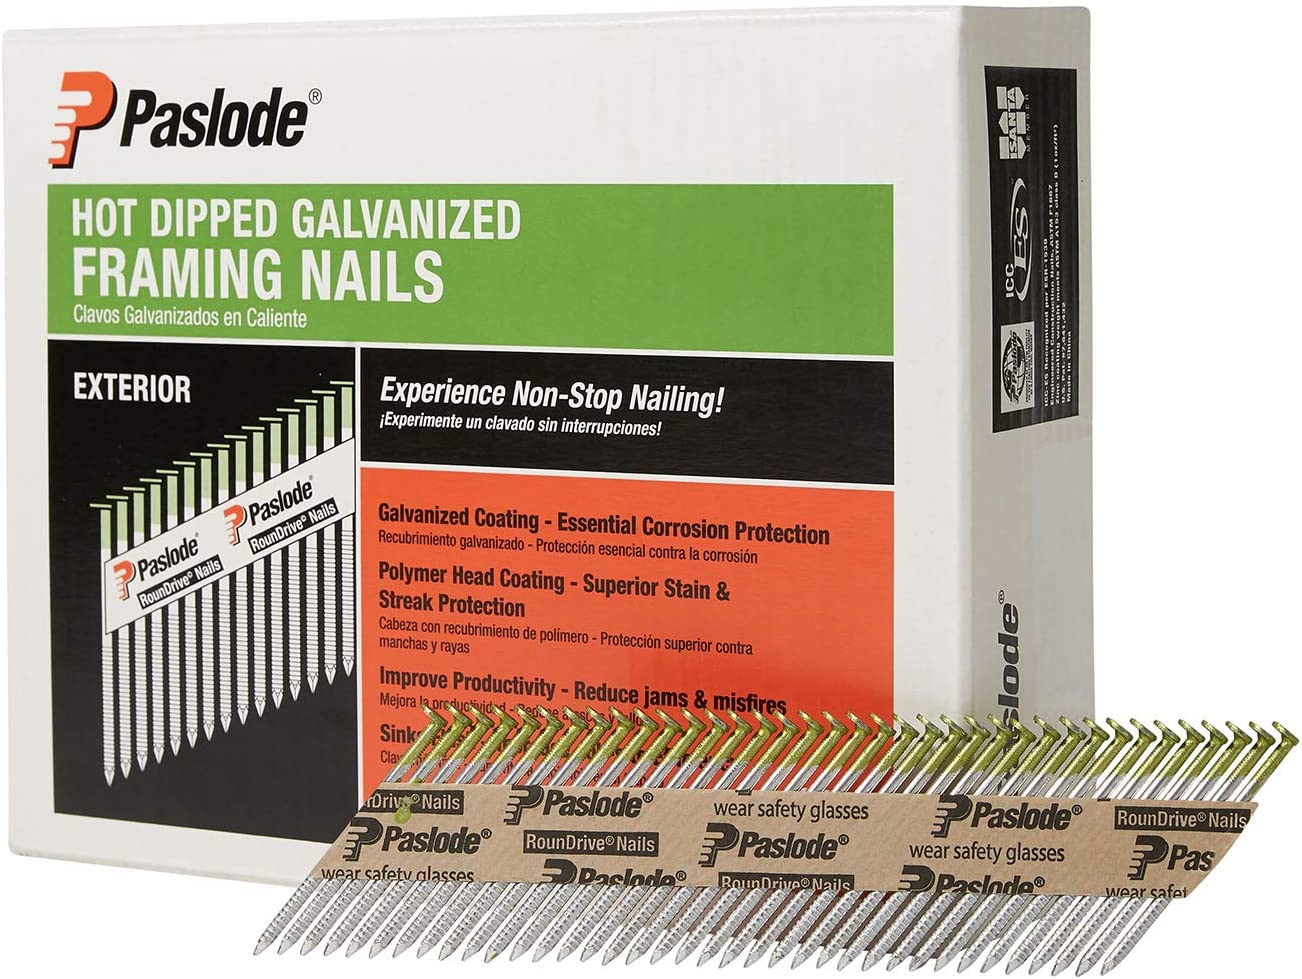 B00023SEFS Paslode - 650383 Round Head 2 3/8-Inch by .113 by 30 Degree Paper Collated Ring Shank Hot Dipped Galvanized Framing Nails for Framing Nailers (2,000 per Box) 71Gak1e9U3L